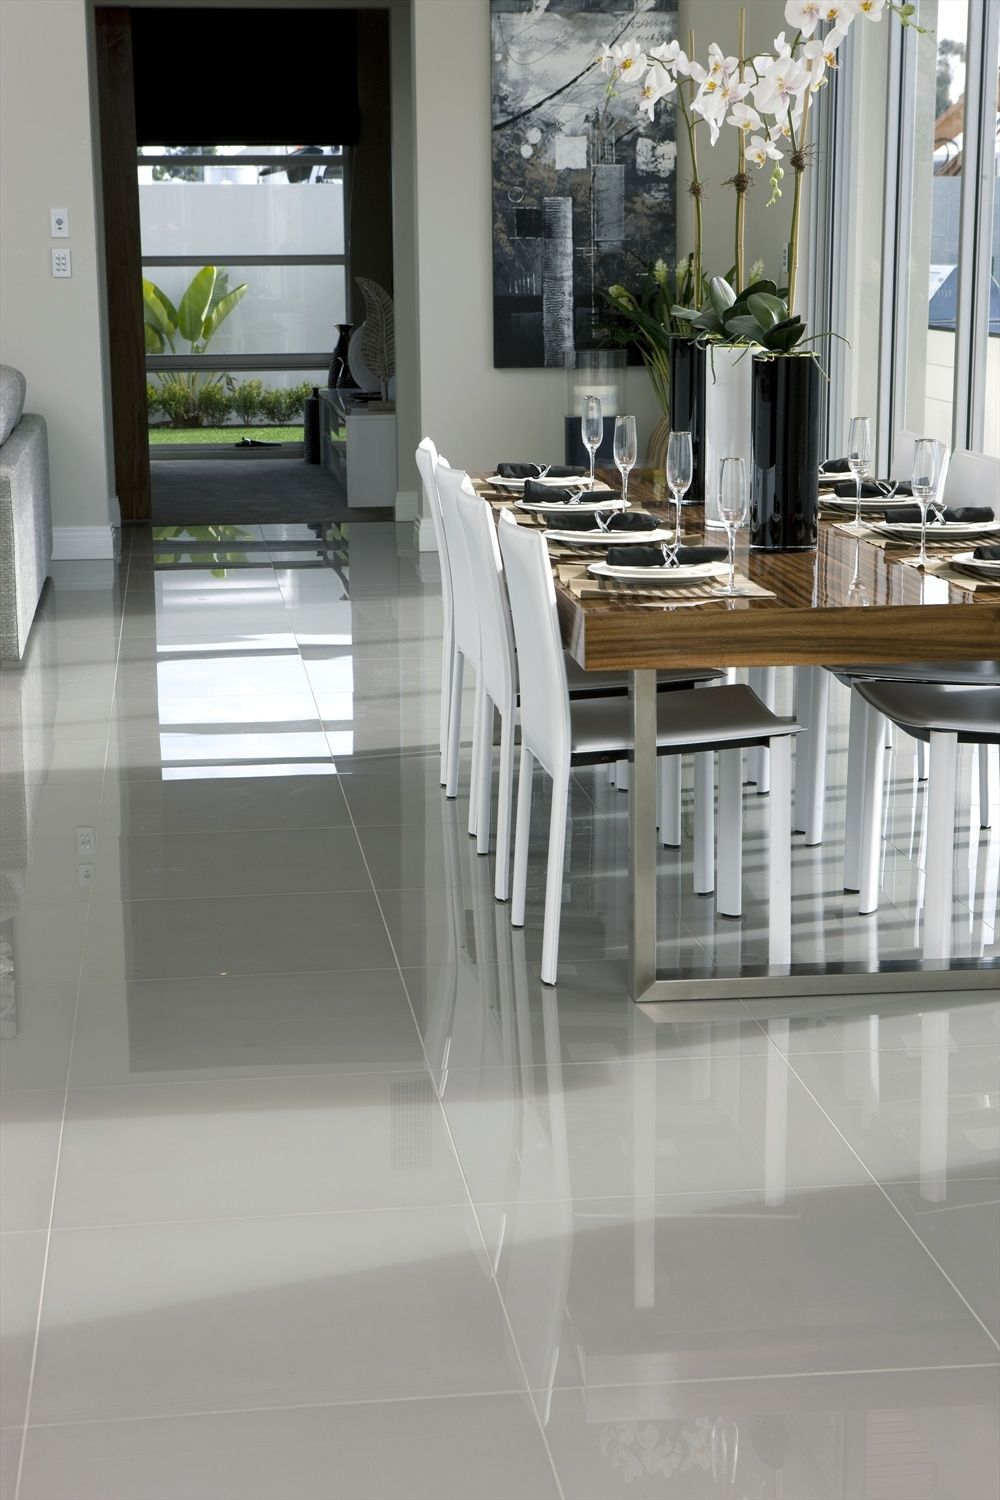 Black Gloss Porcelain Floor Tile 600x600mm Modern